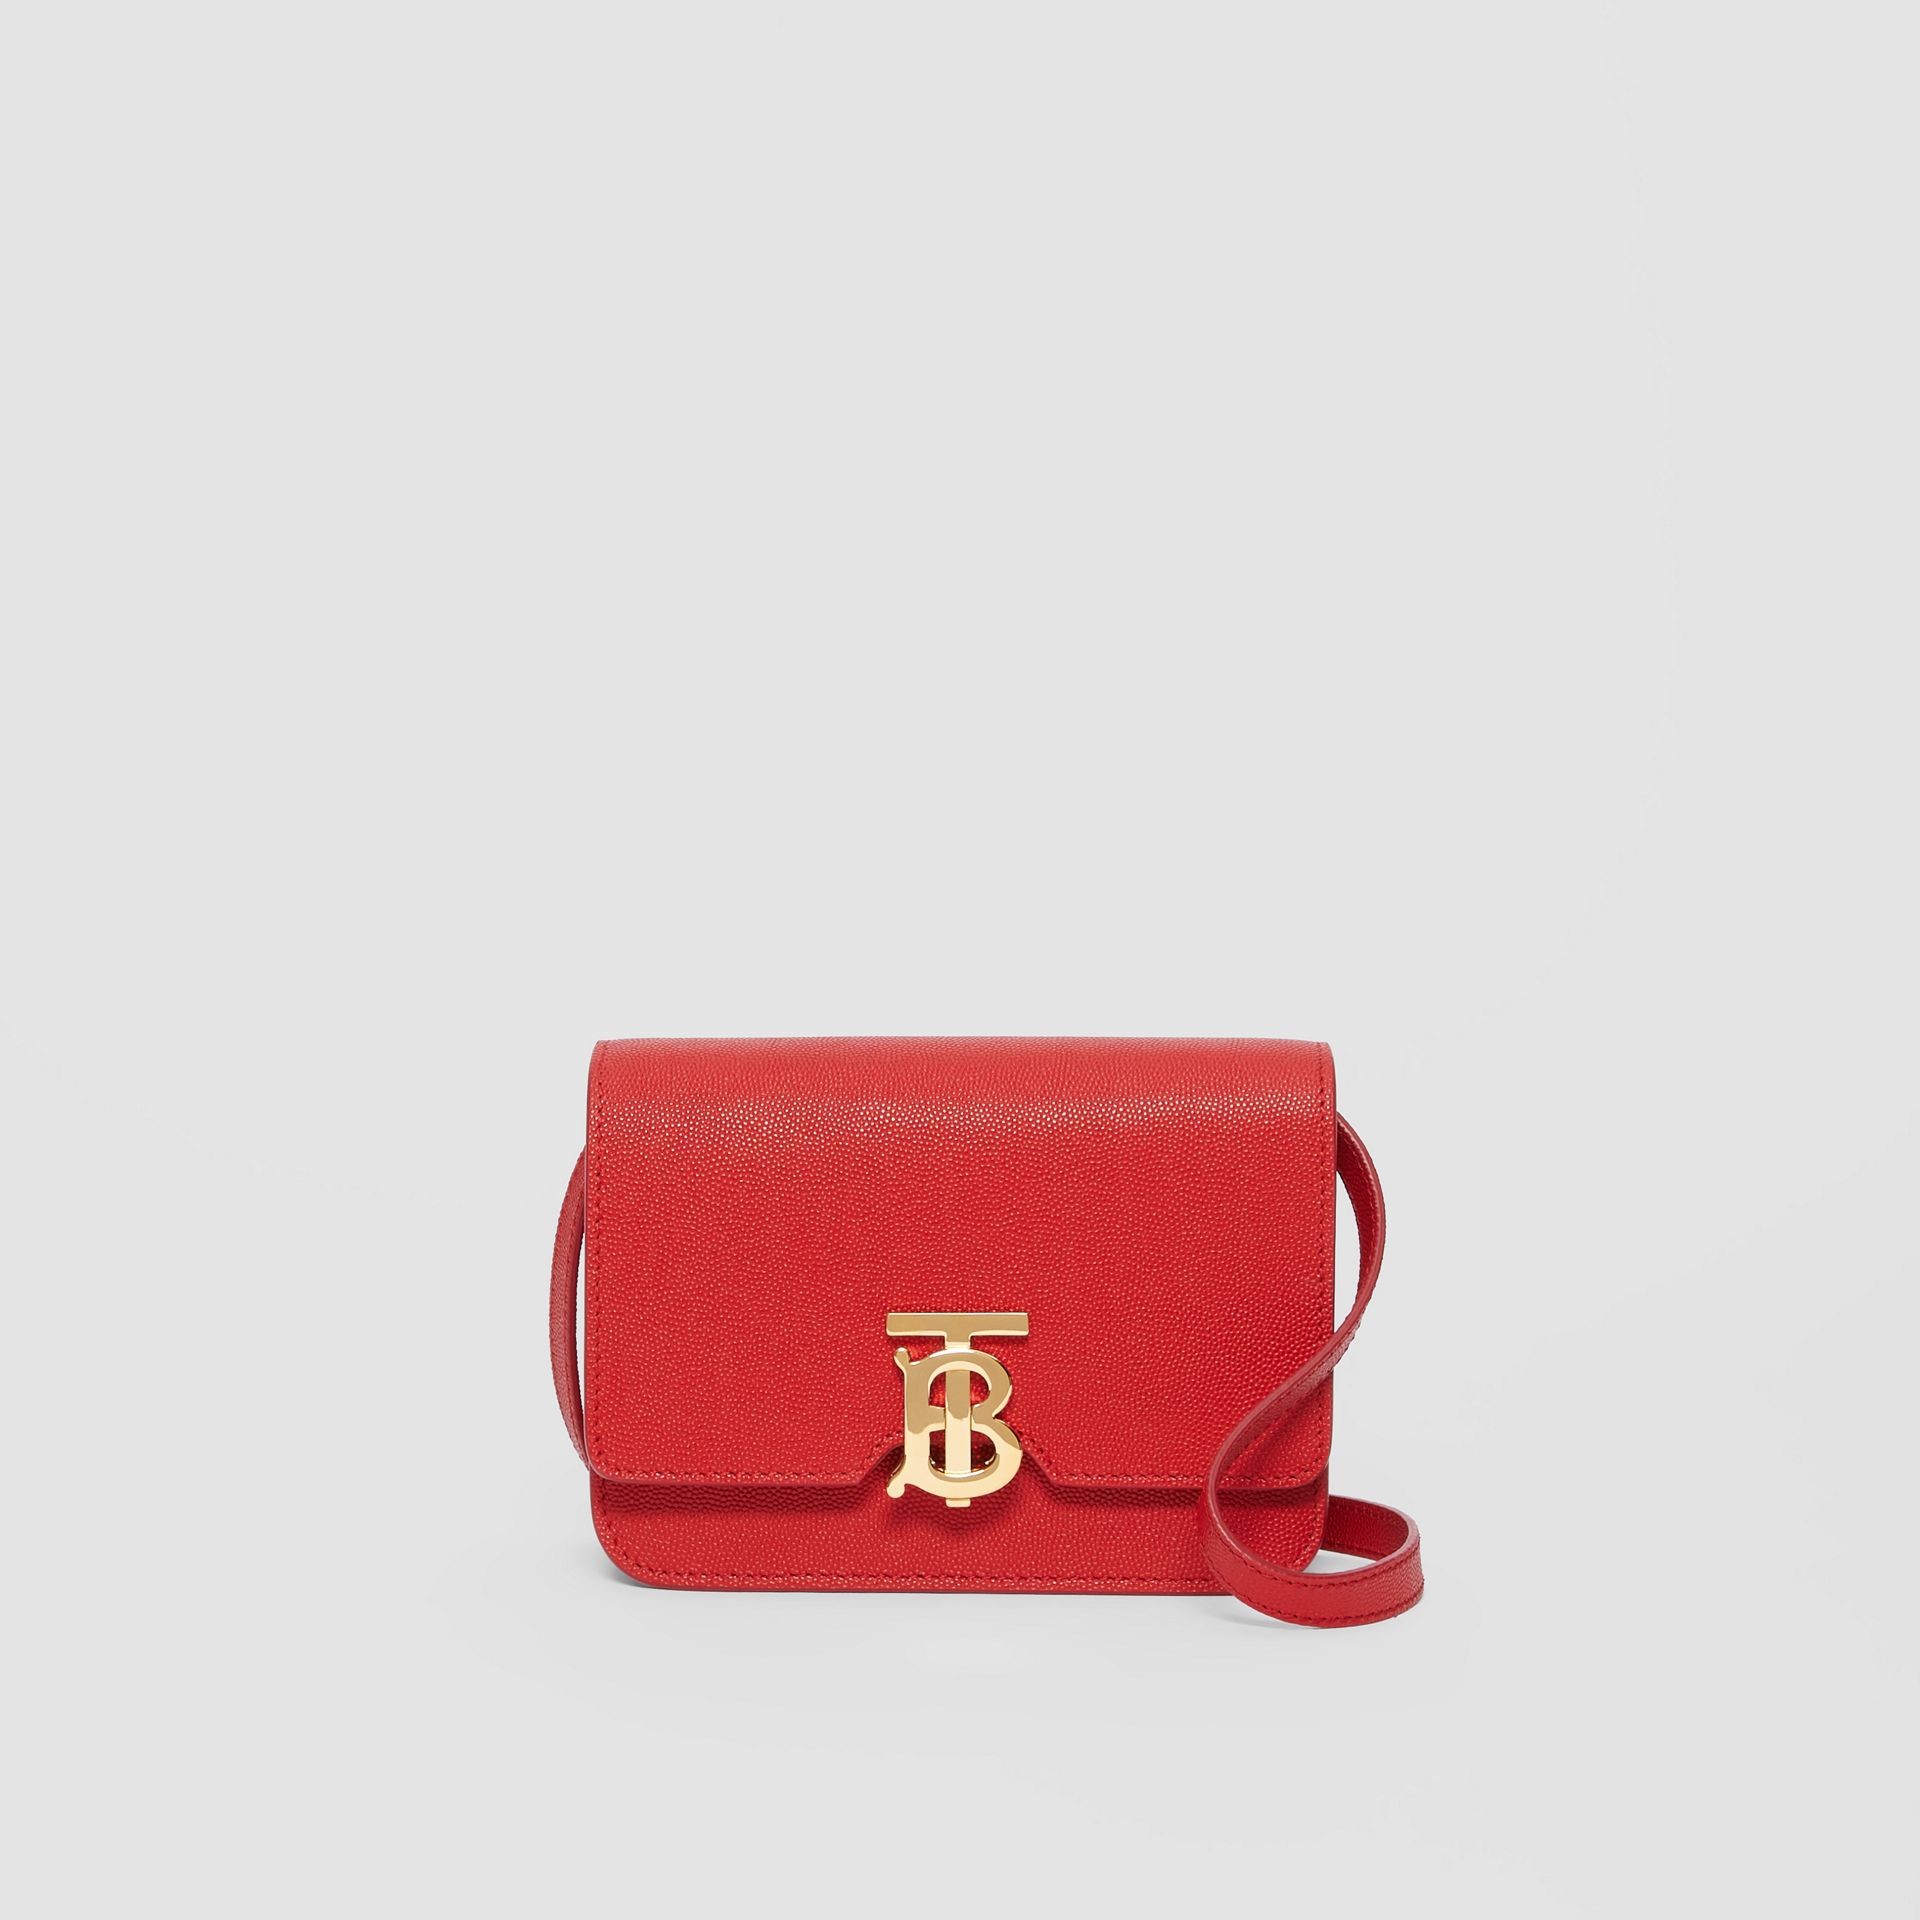 Mini Grainy Leather TB Bag in Bright Red - Women | Burberry Singapore - gallery image 0